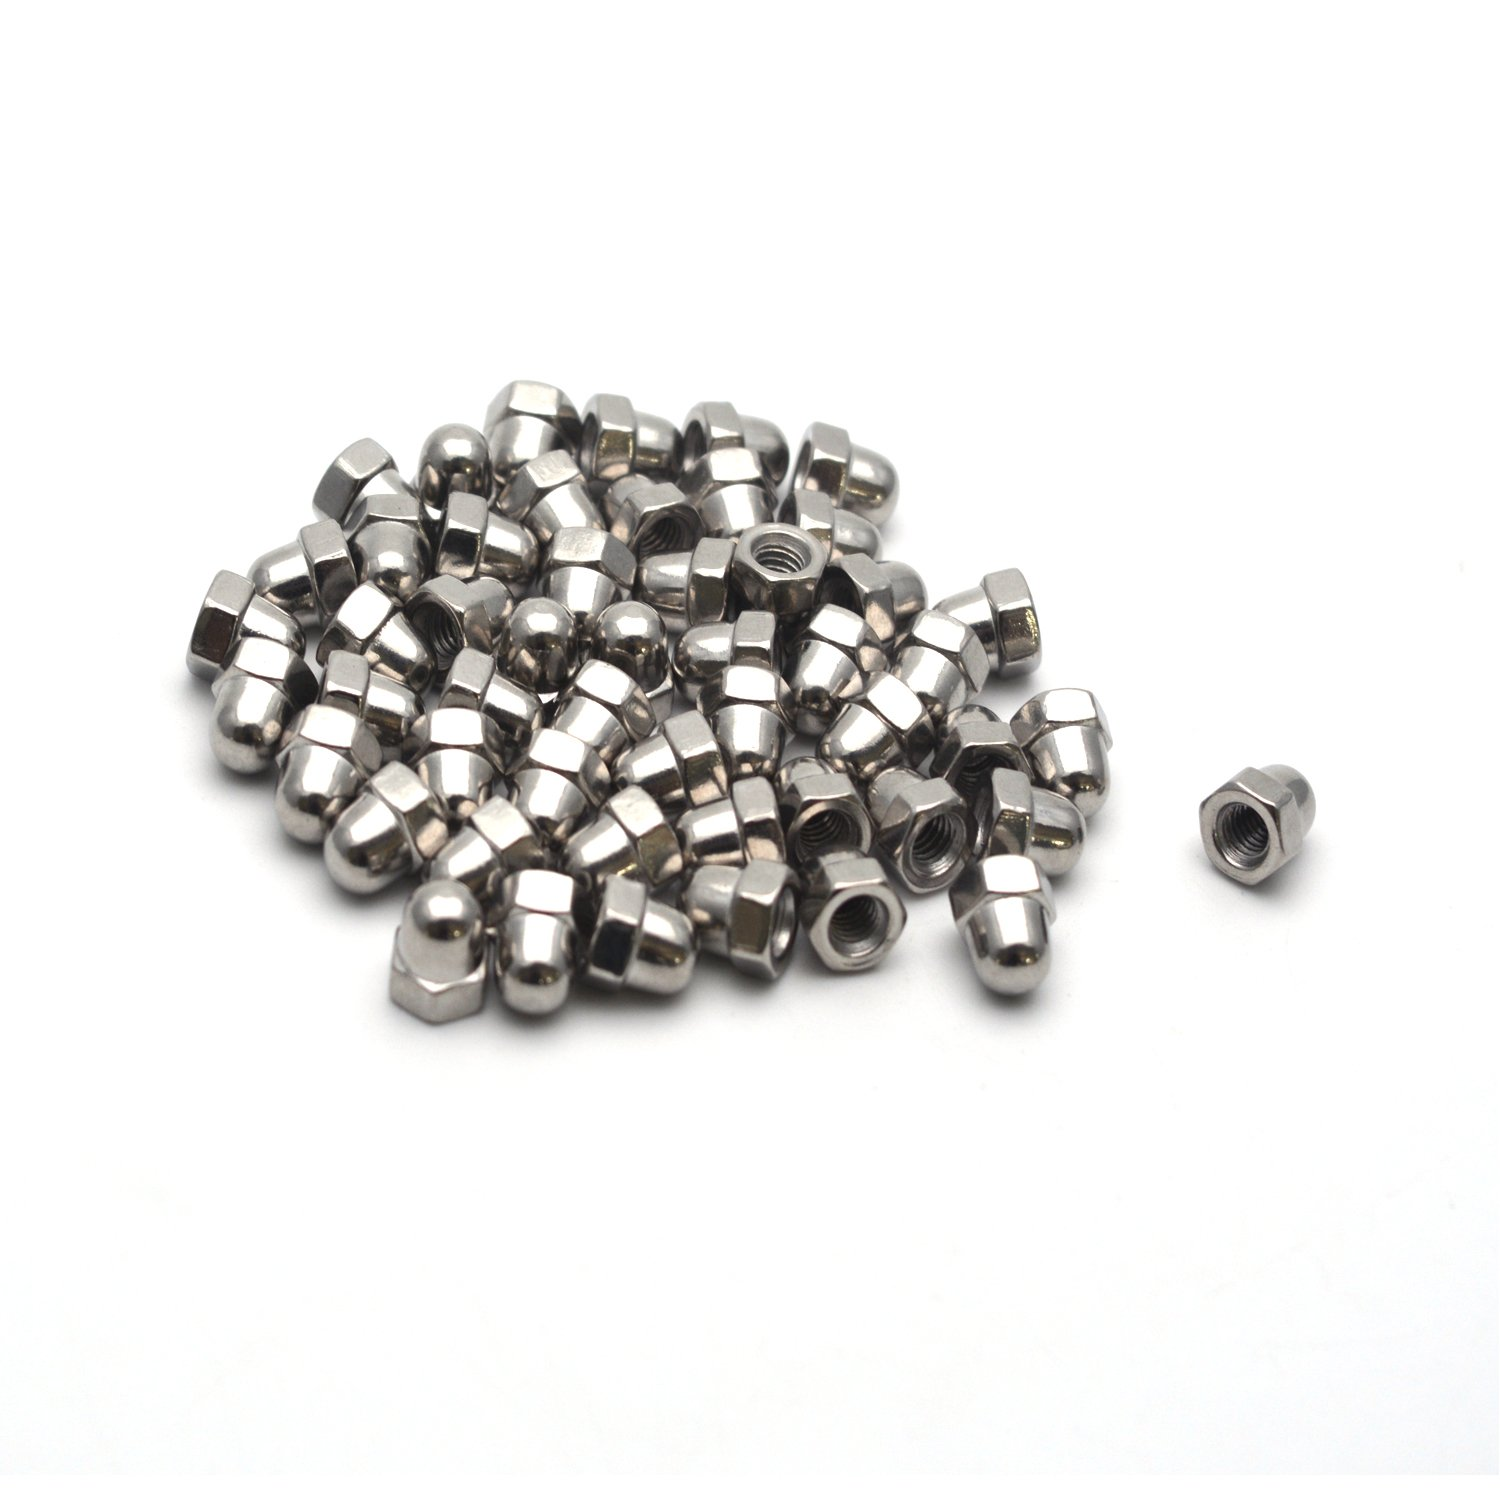 3//8-16 Thread Dia Dome Cap Head Nickel Plating Carbon Hex Nuts Screws Bolts 20-Pack Antrader Steel Acorn Nut